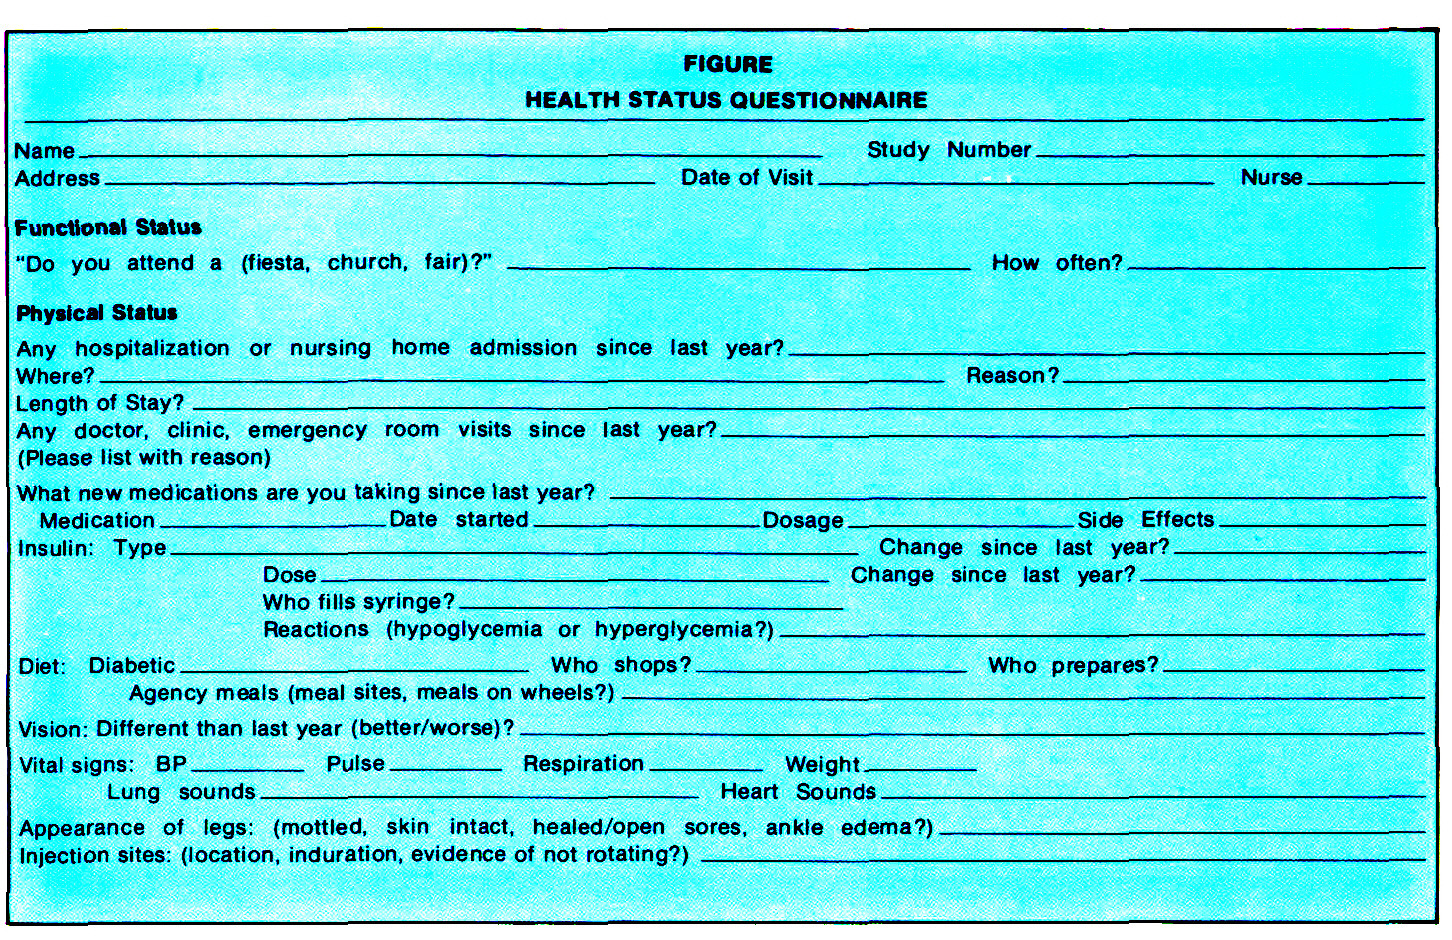 FIGUREHEALTH STATUS QUESTIONNAIRE